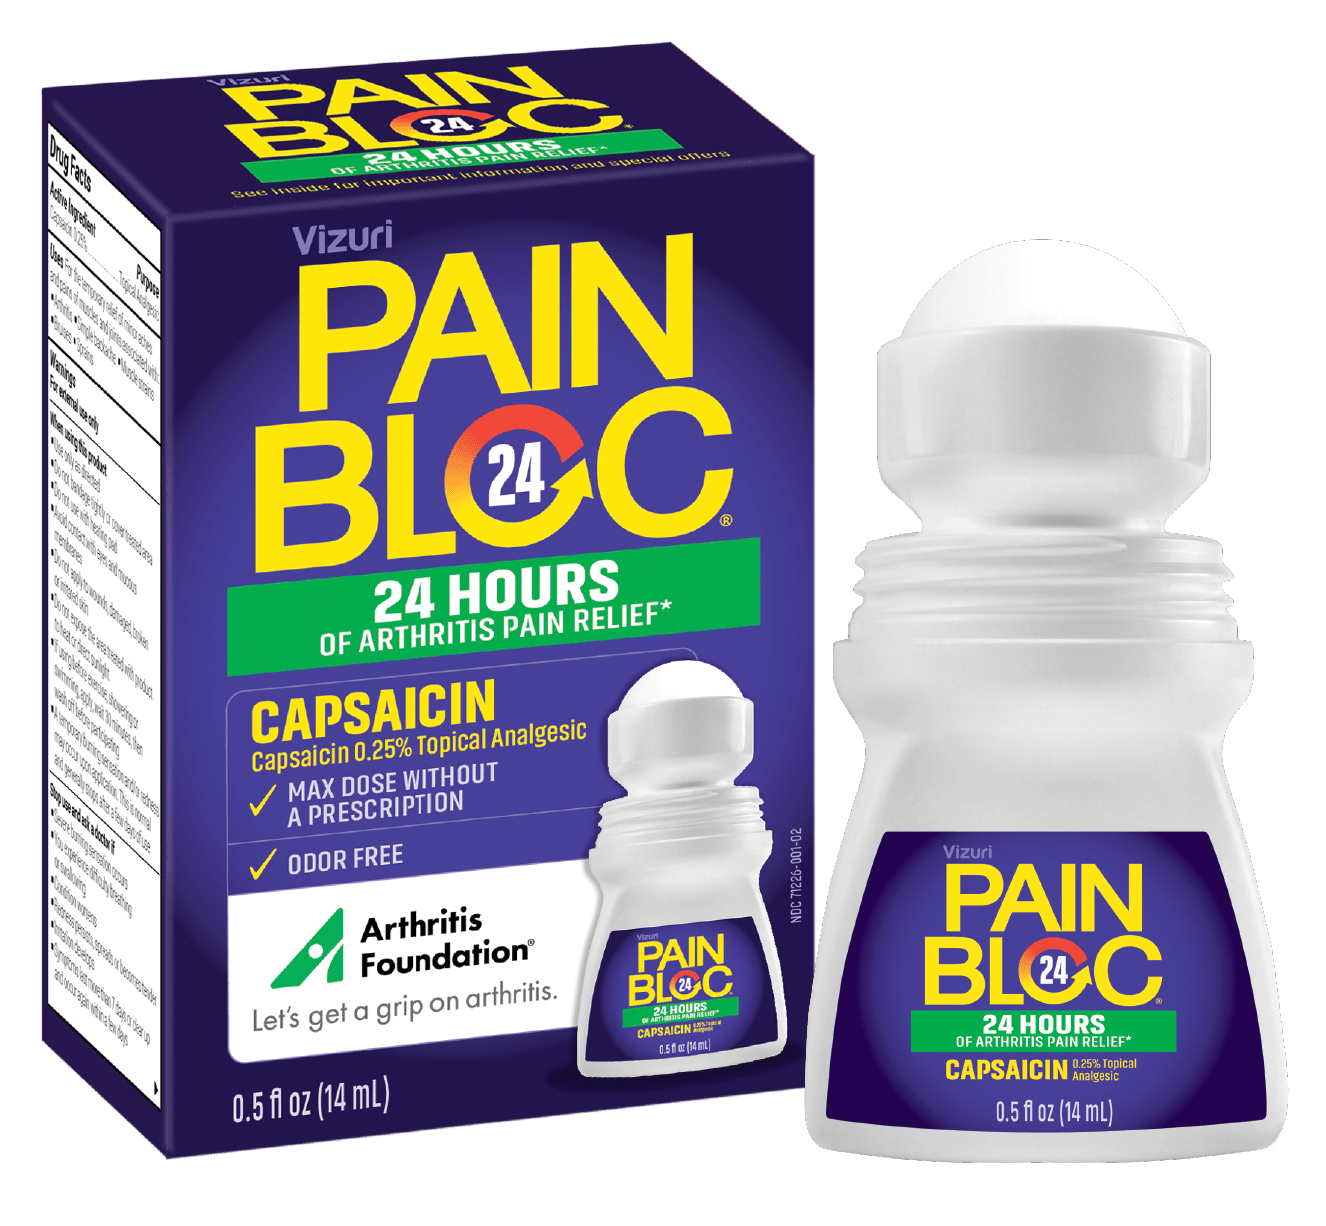 Buy Vizuri Painbloc24